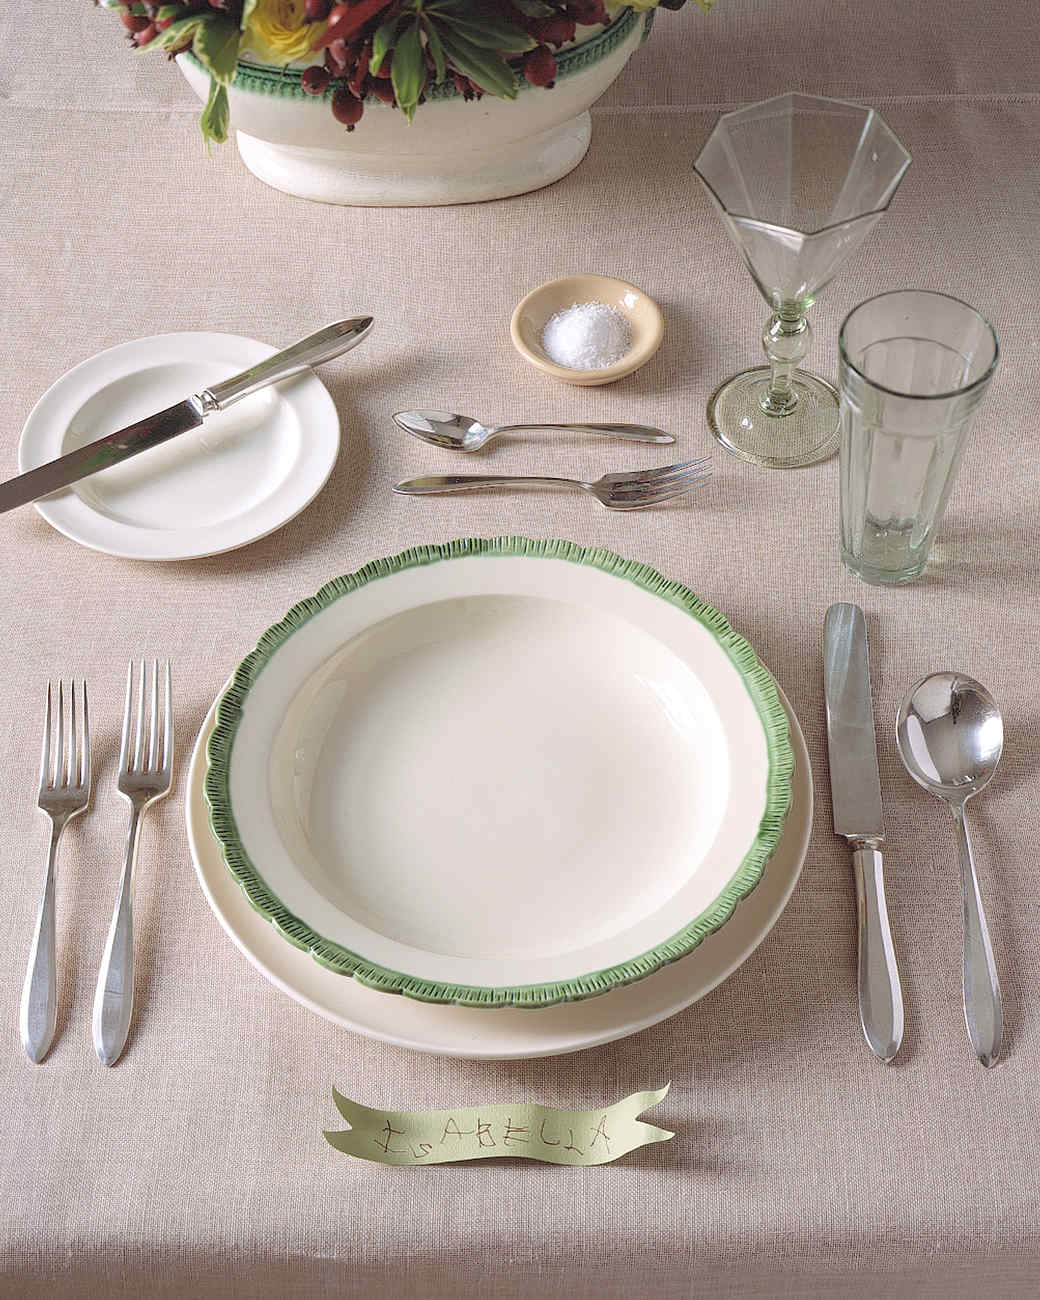 table-setting-3-a98979.jpg